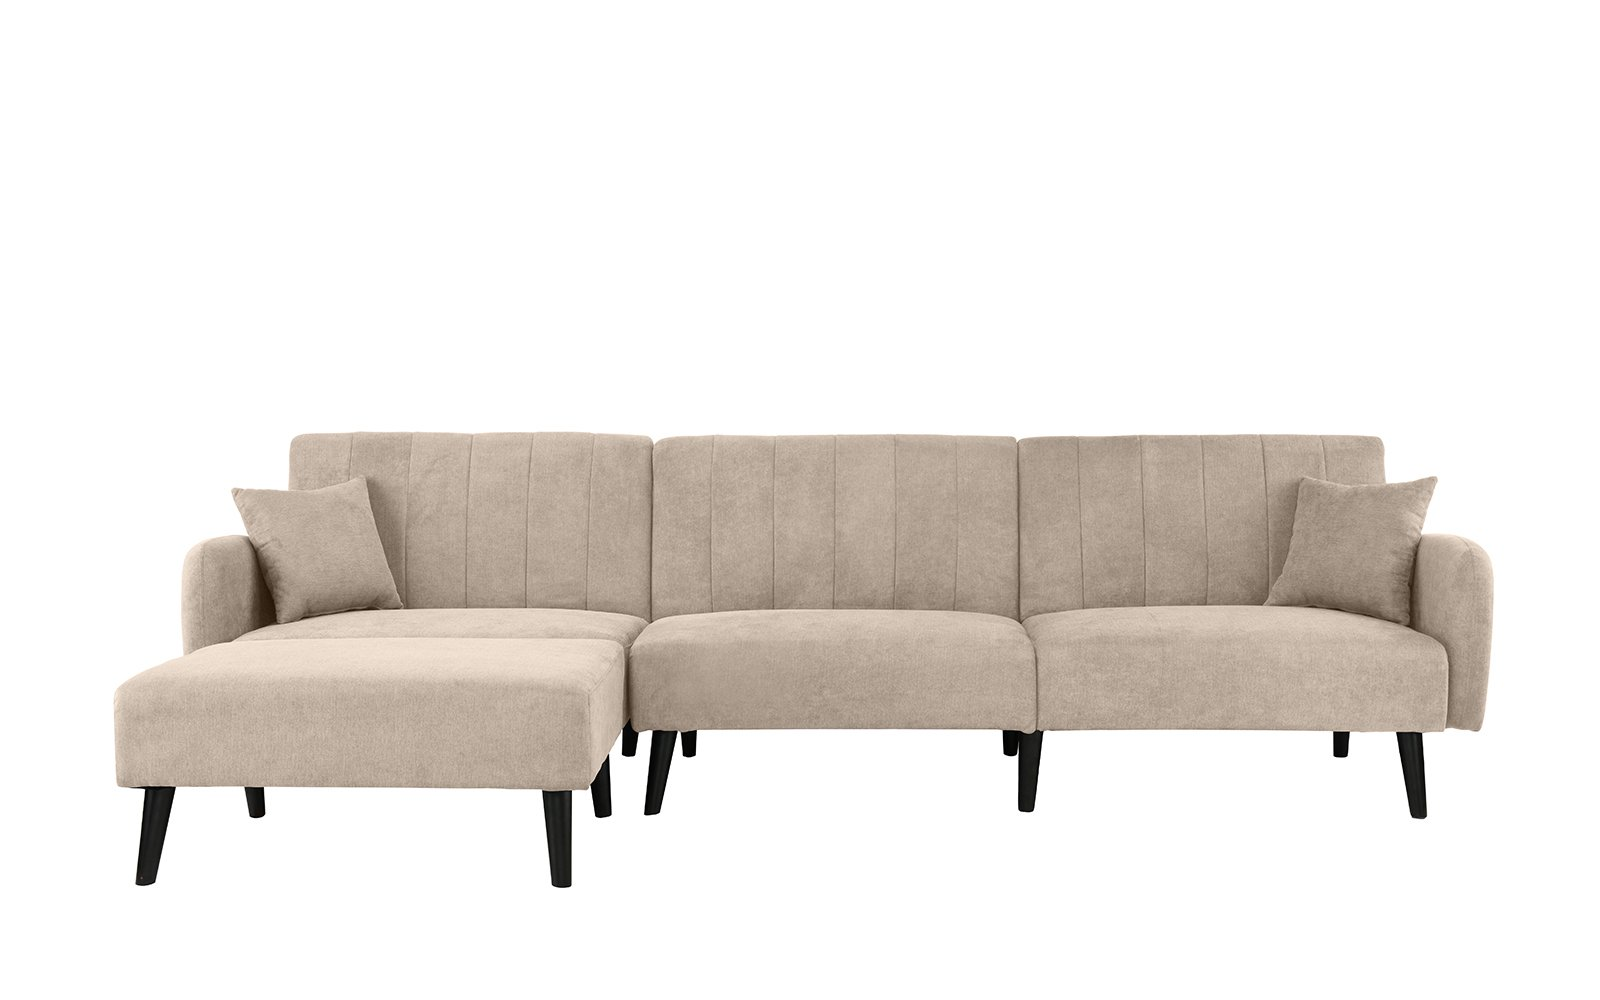 Details About Mid Century Modern L Shape Sectional Sofa Convertible Futon Sleeper In Beige